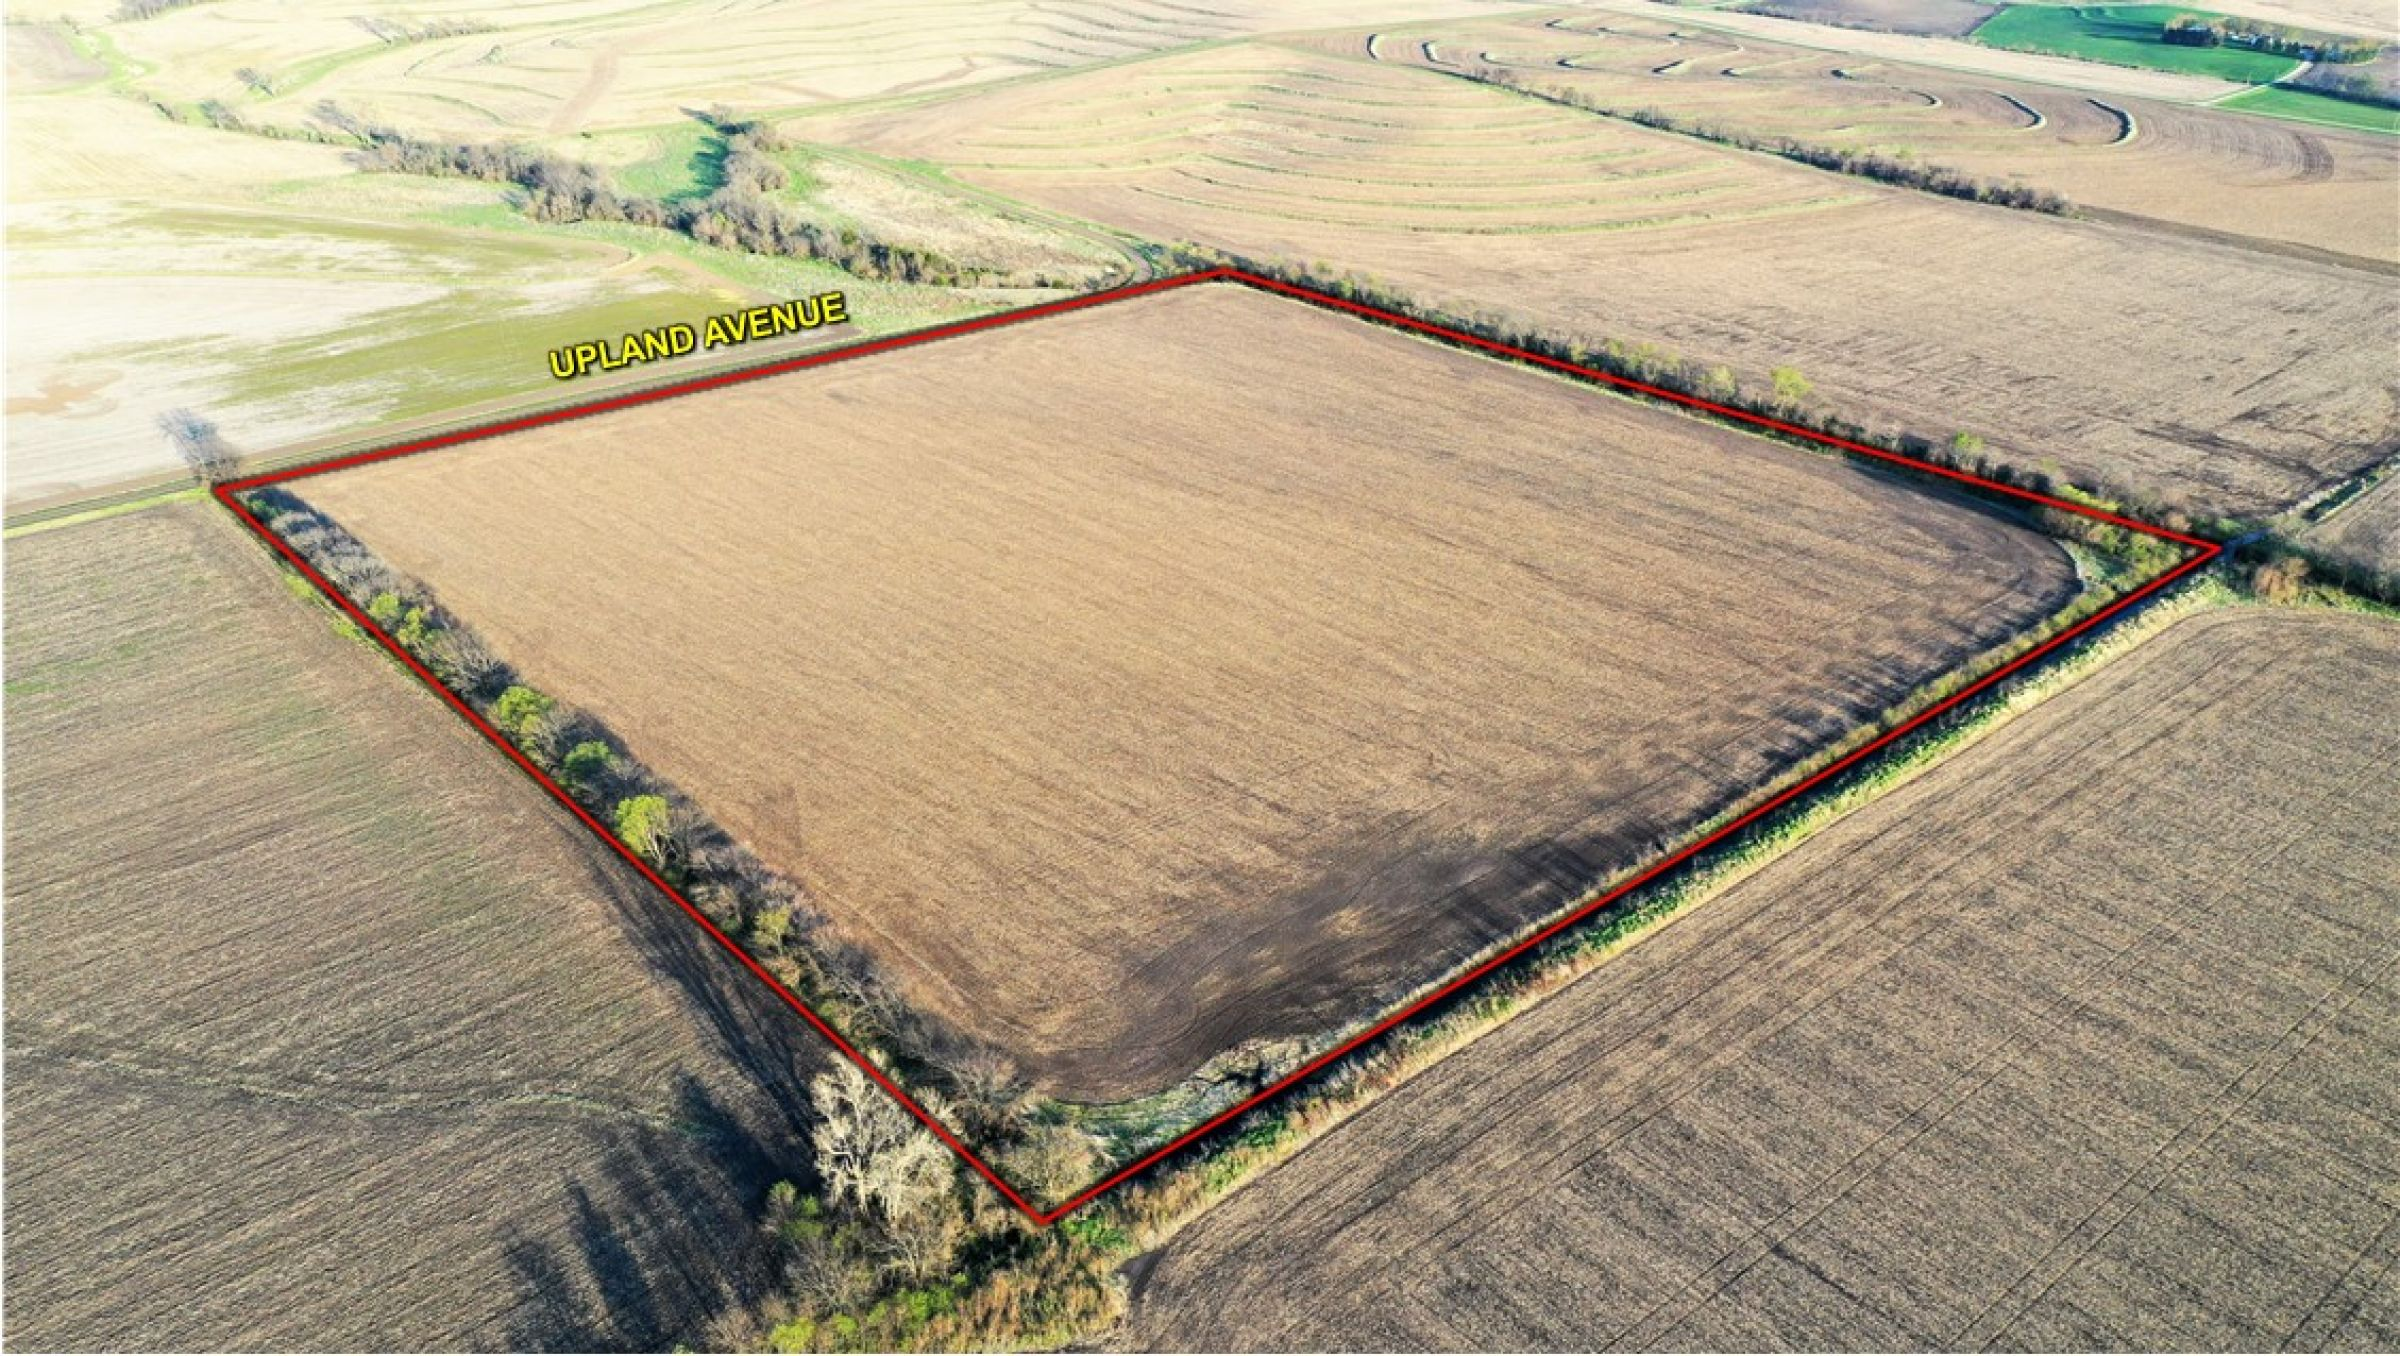 land-page-county-iowa-40-acres-listing-number-14981-1-2020-04-28-184116.jpg